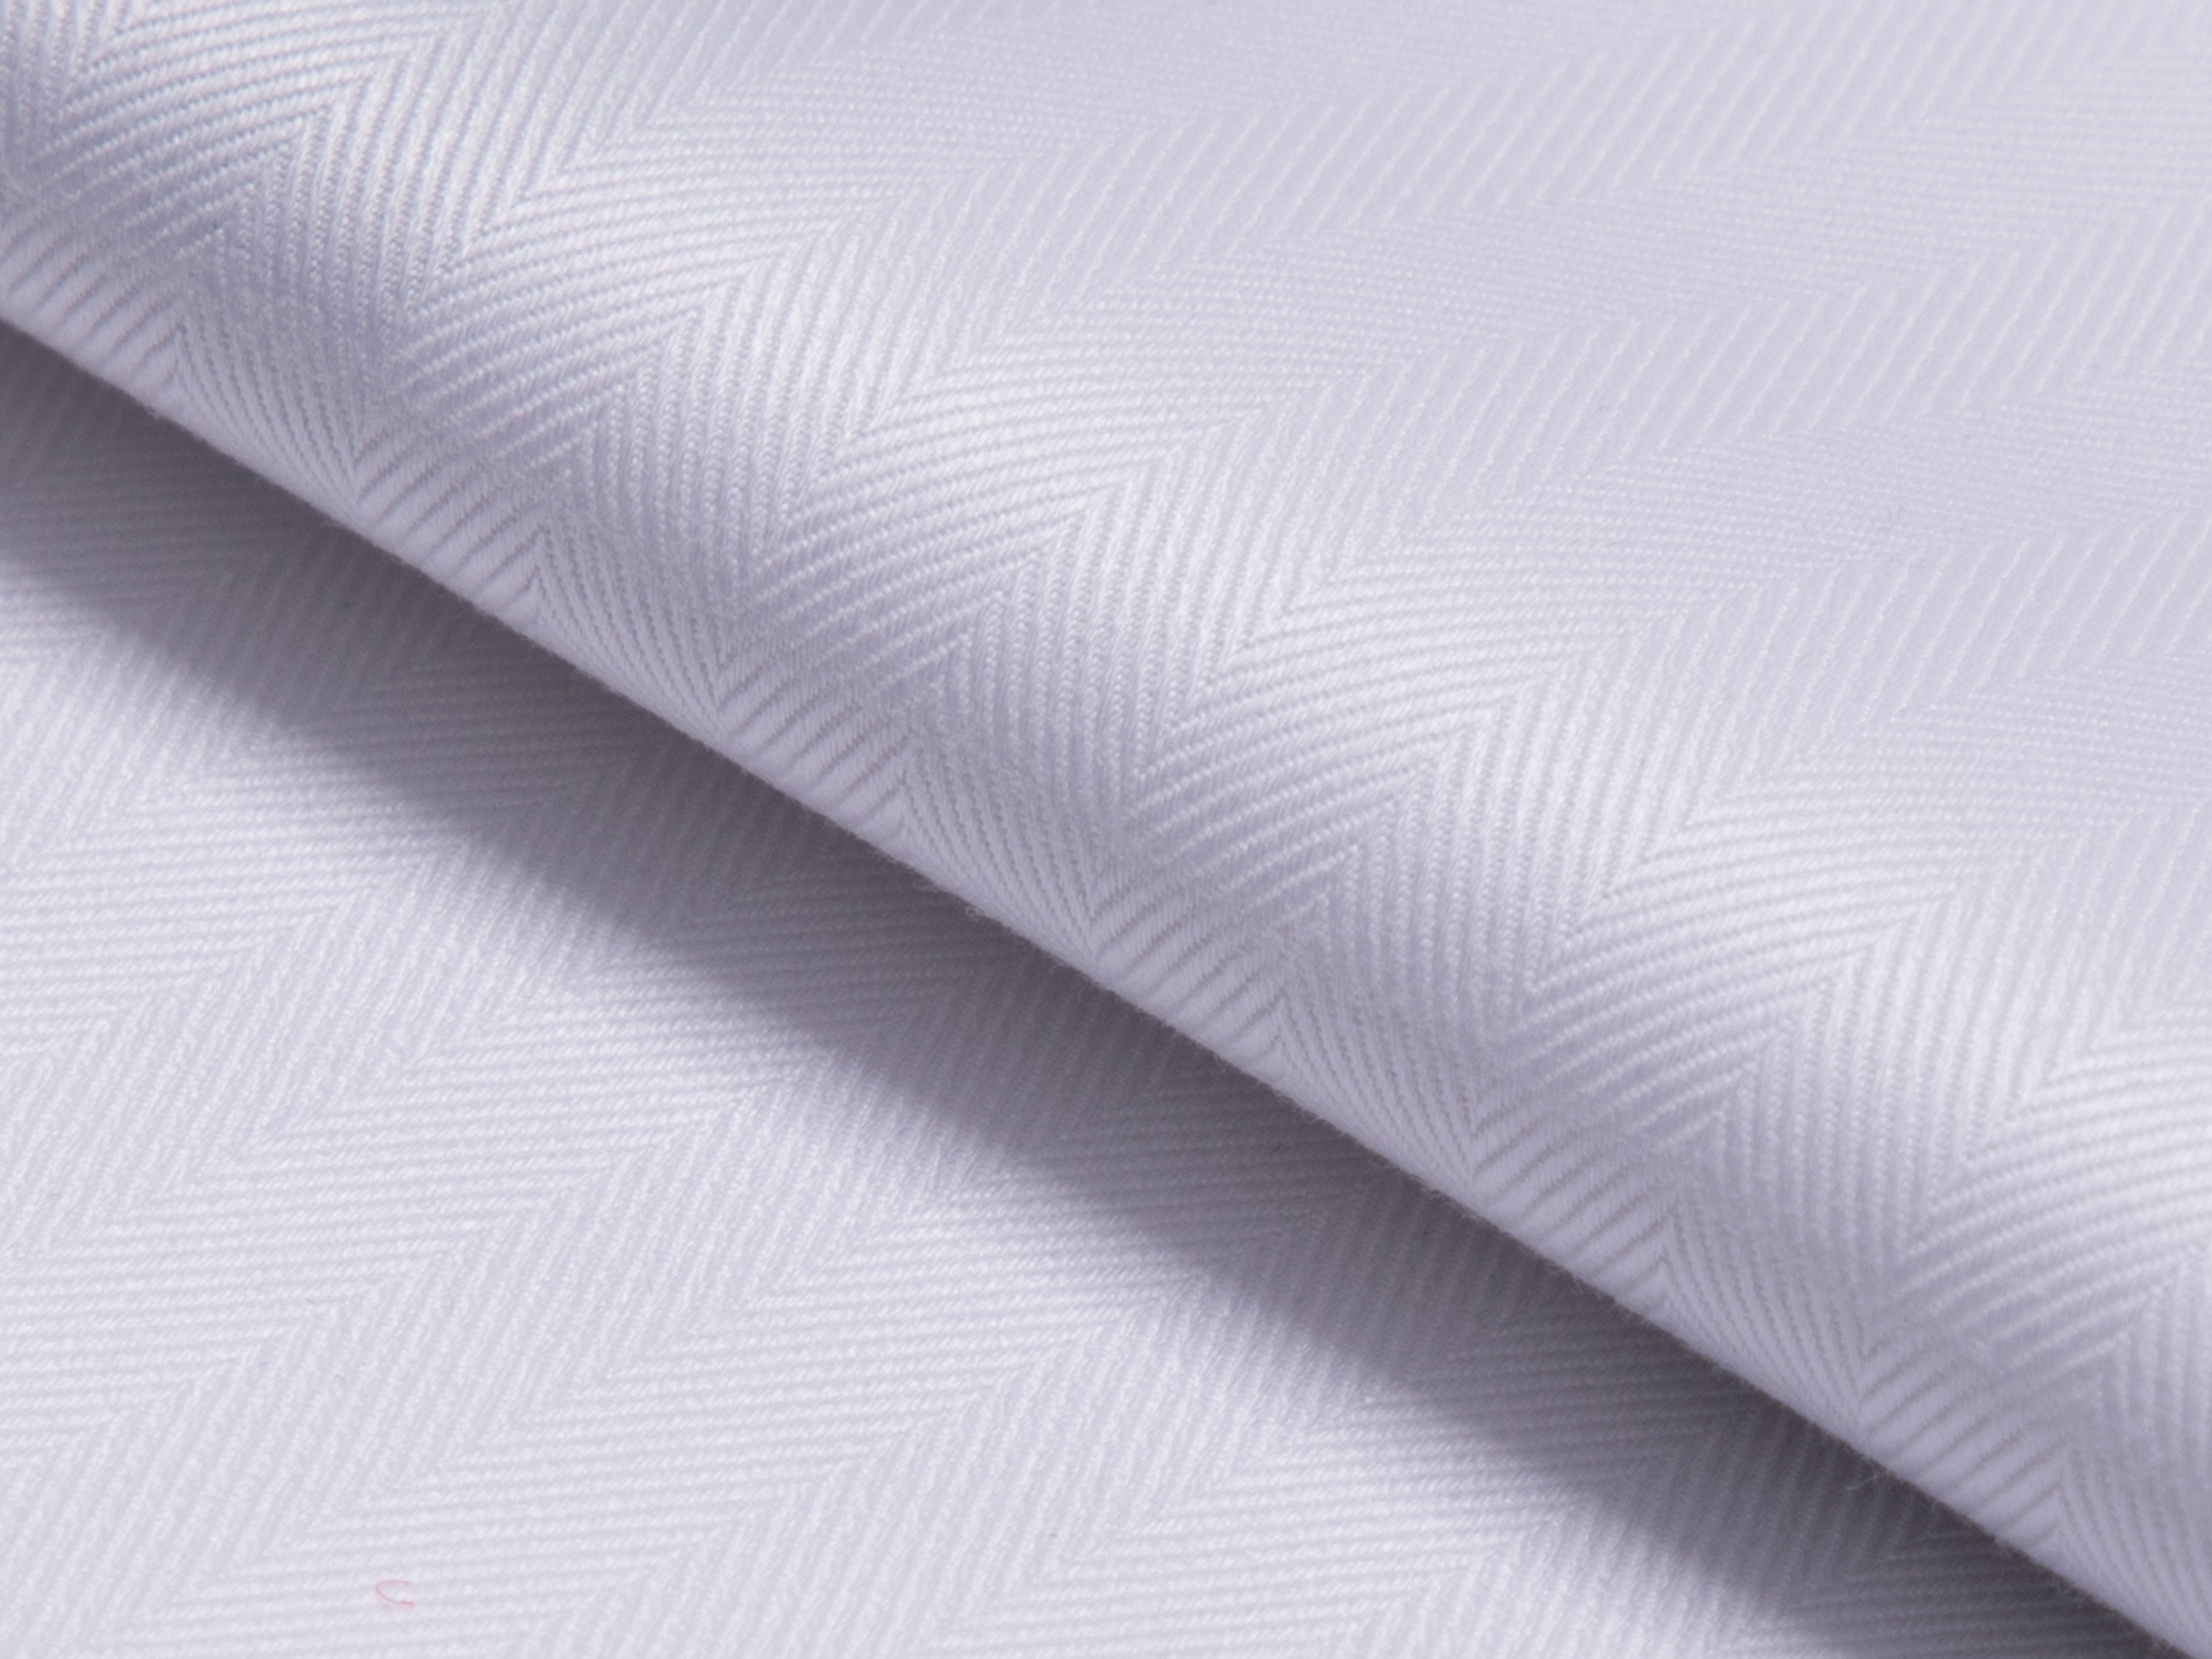 Buy tailor made shirts online - MAYFAIR (NEW) - Herringbone White